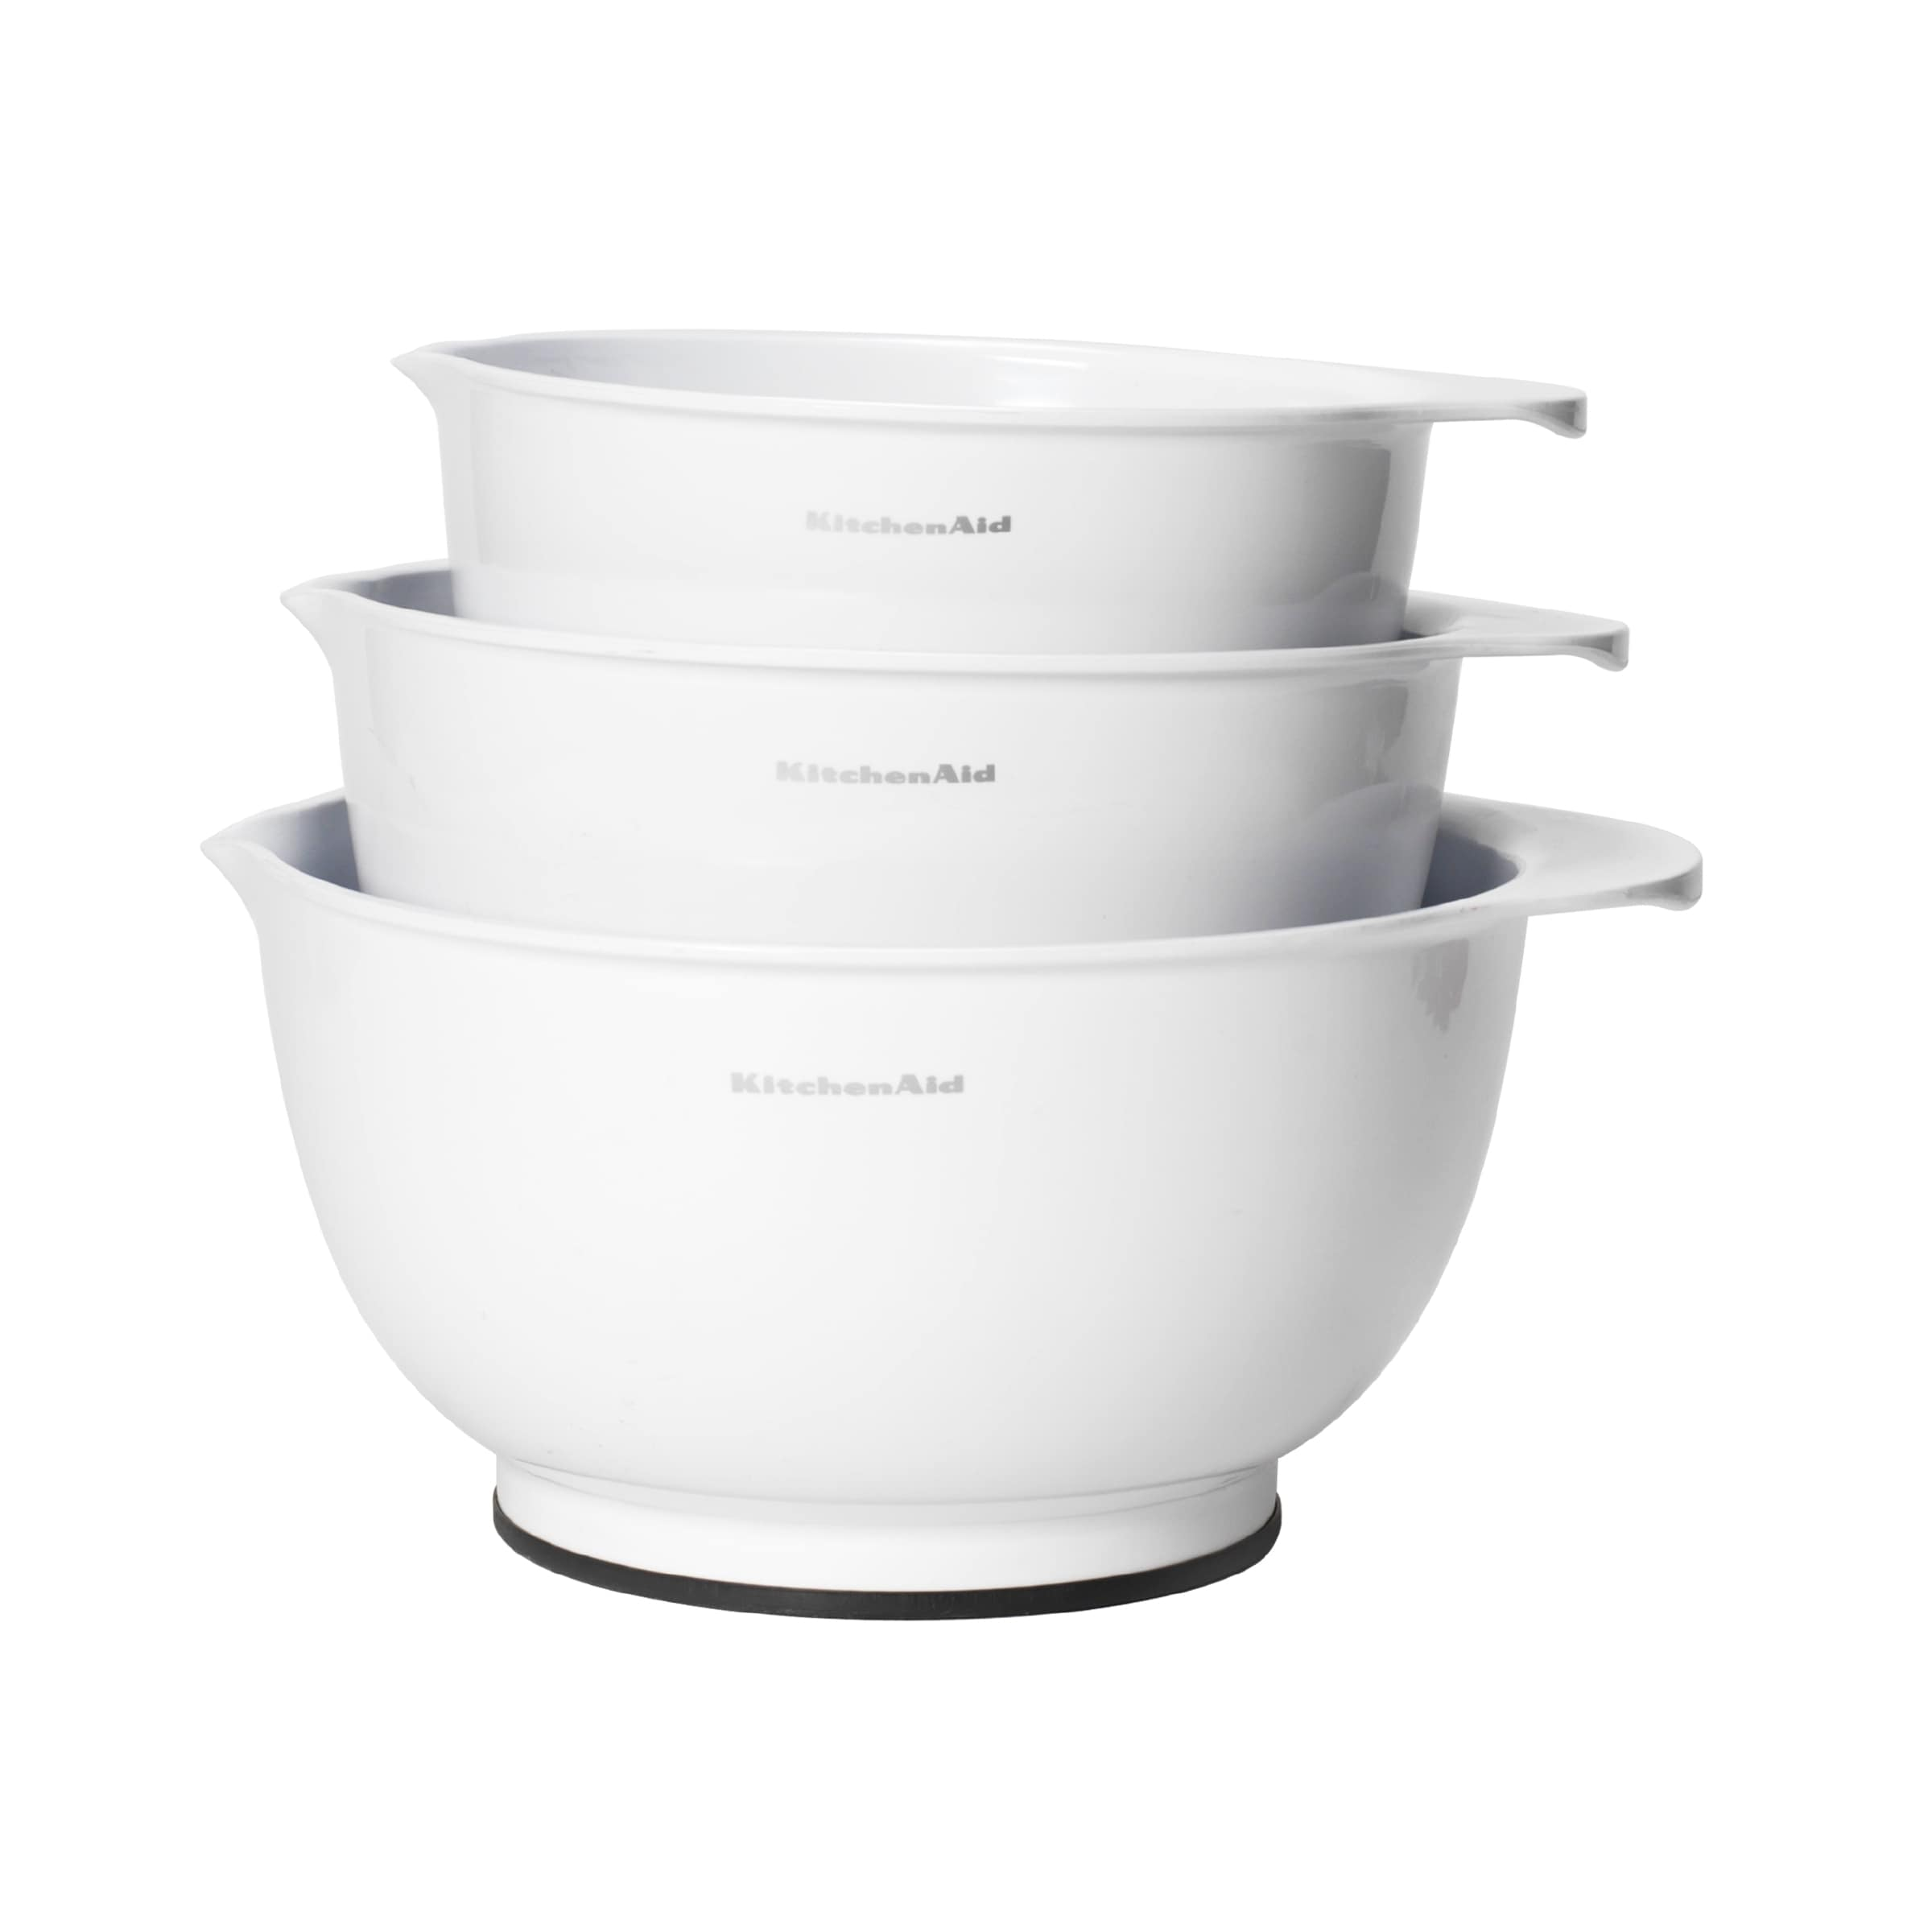 Kitchen Aid Classic White Plastic Mixing Bowls (Set of 3)